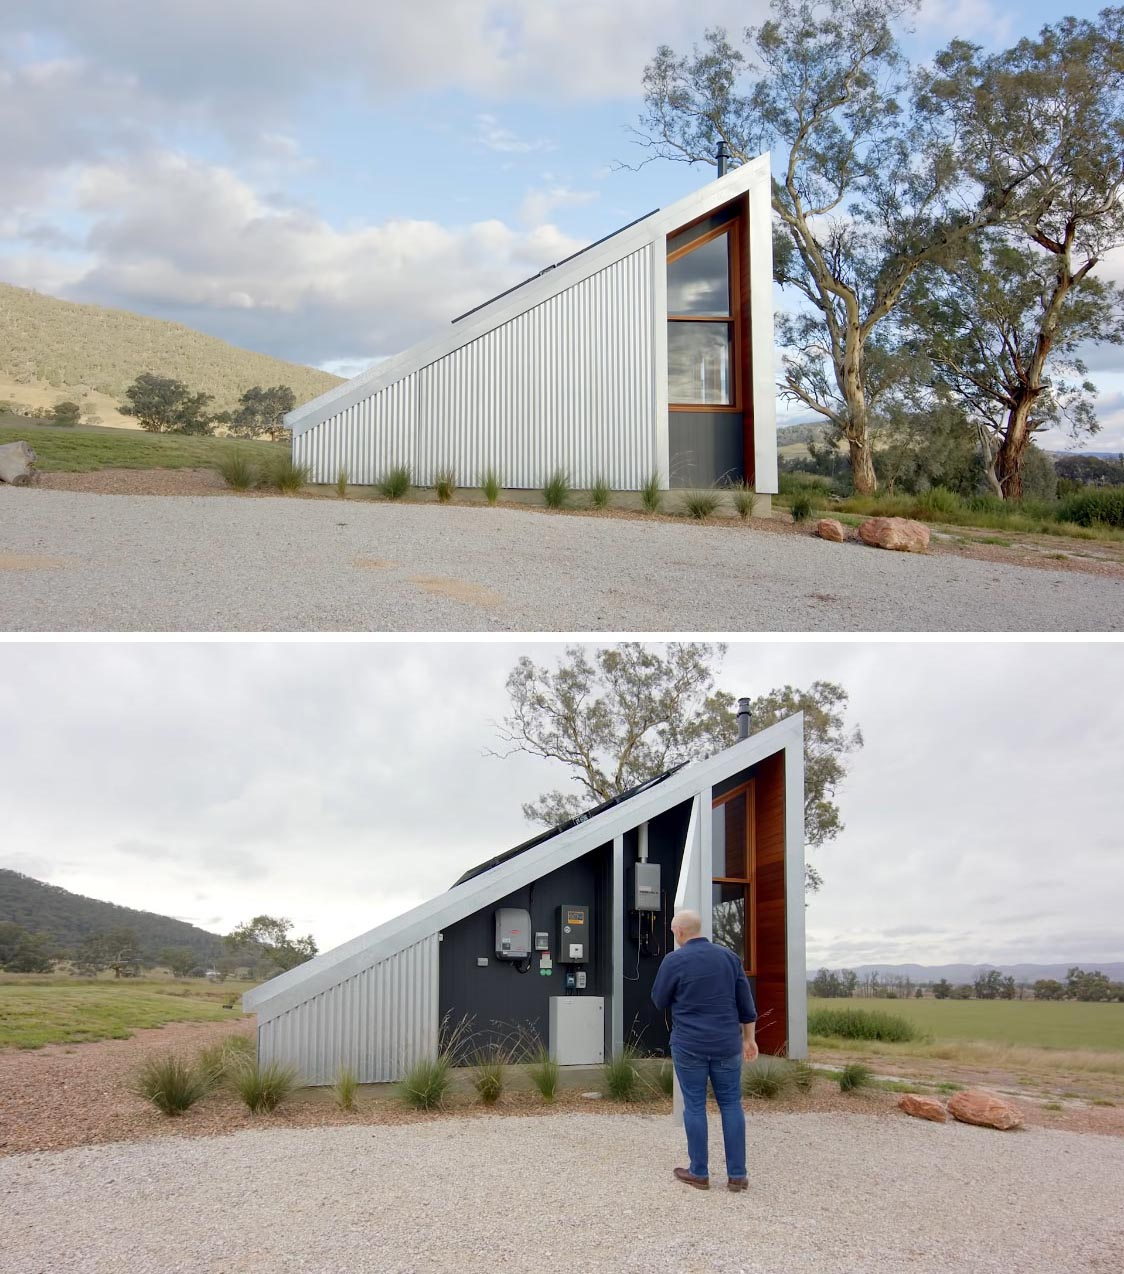 A hidden panel within this off-grid tiny home houses the solar batteries. There's also rain water collection tanks, with some of the water reserved for fighting bush fires if needed.